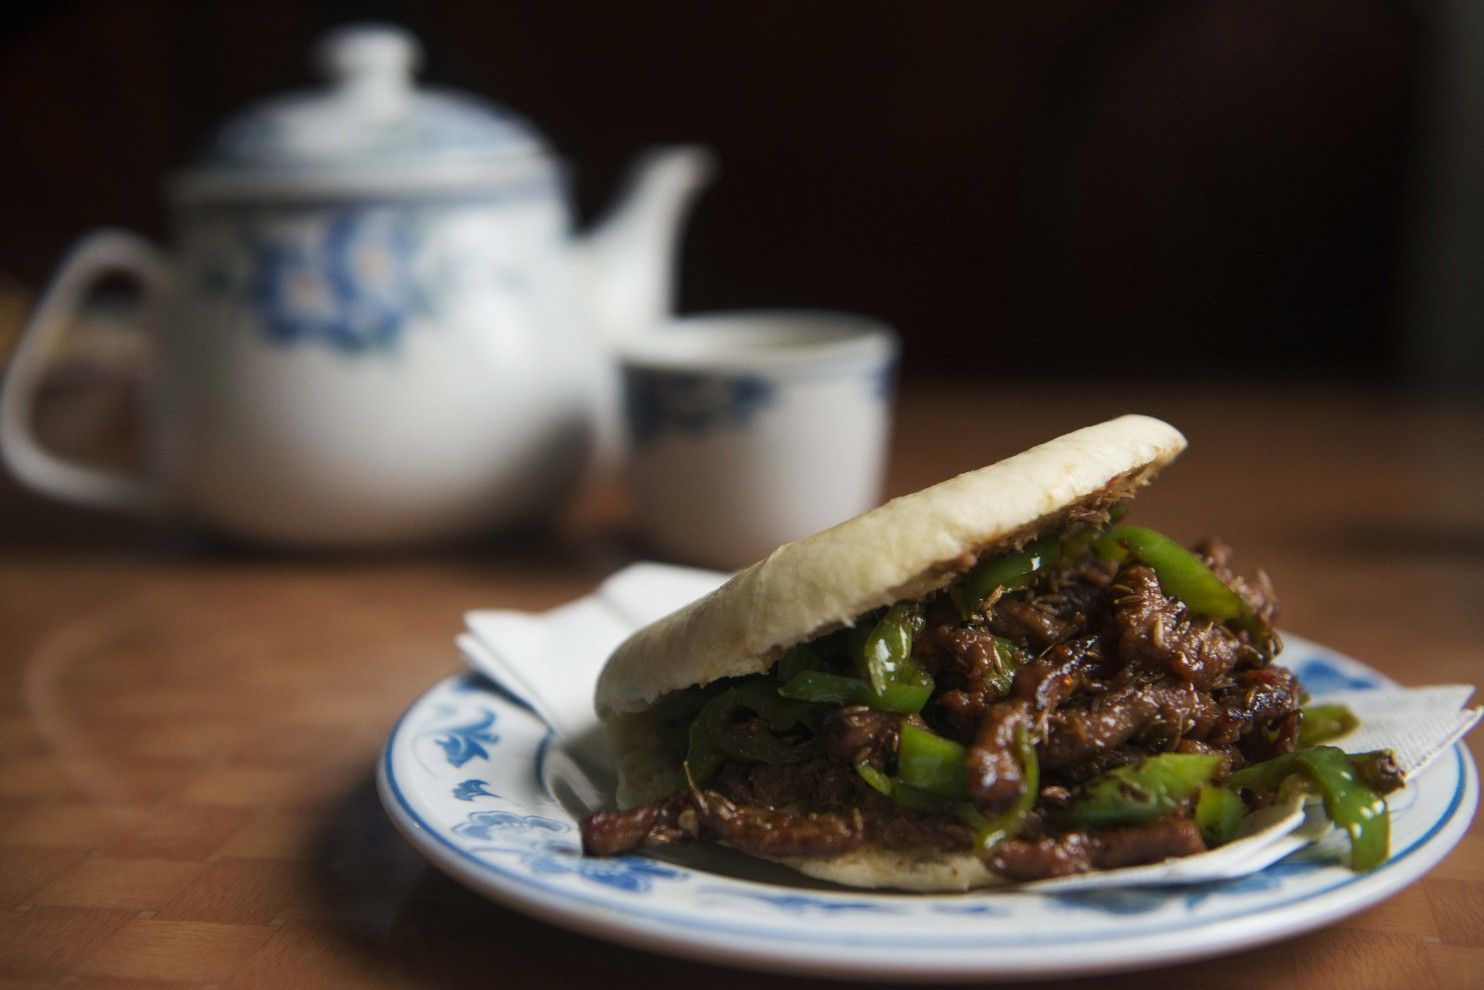 The 20 Diner Panda Gourmet Dazzles With Genuine Sichuan And Shaanxi Cooking At A Days Inn Chinese Restaurant Gourmet Cooking